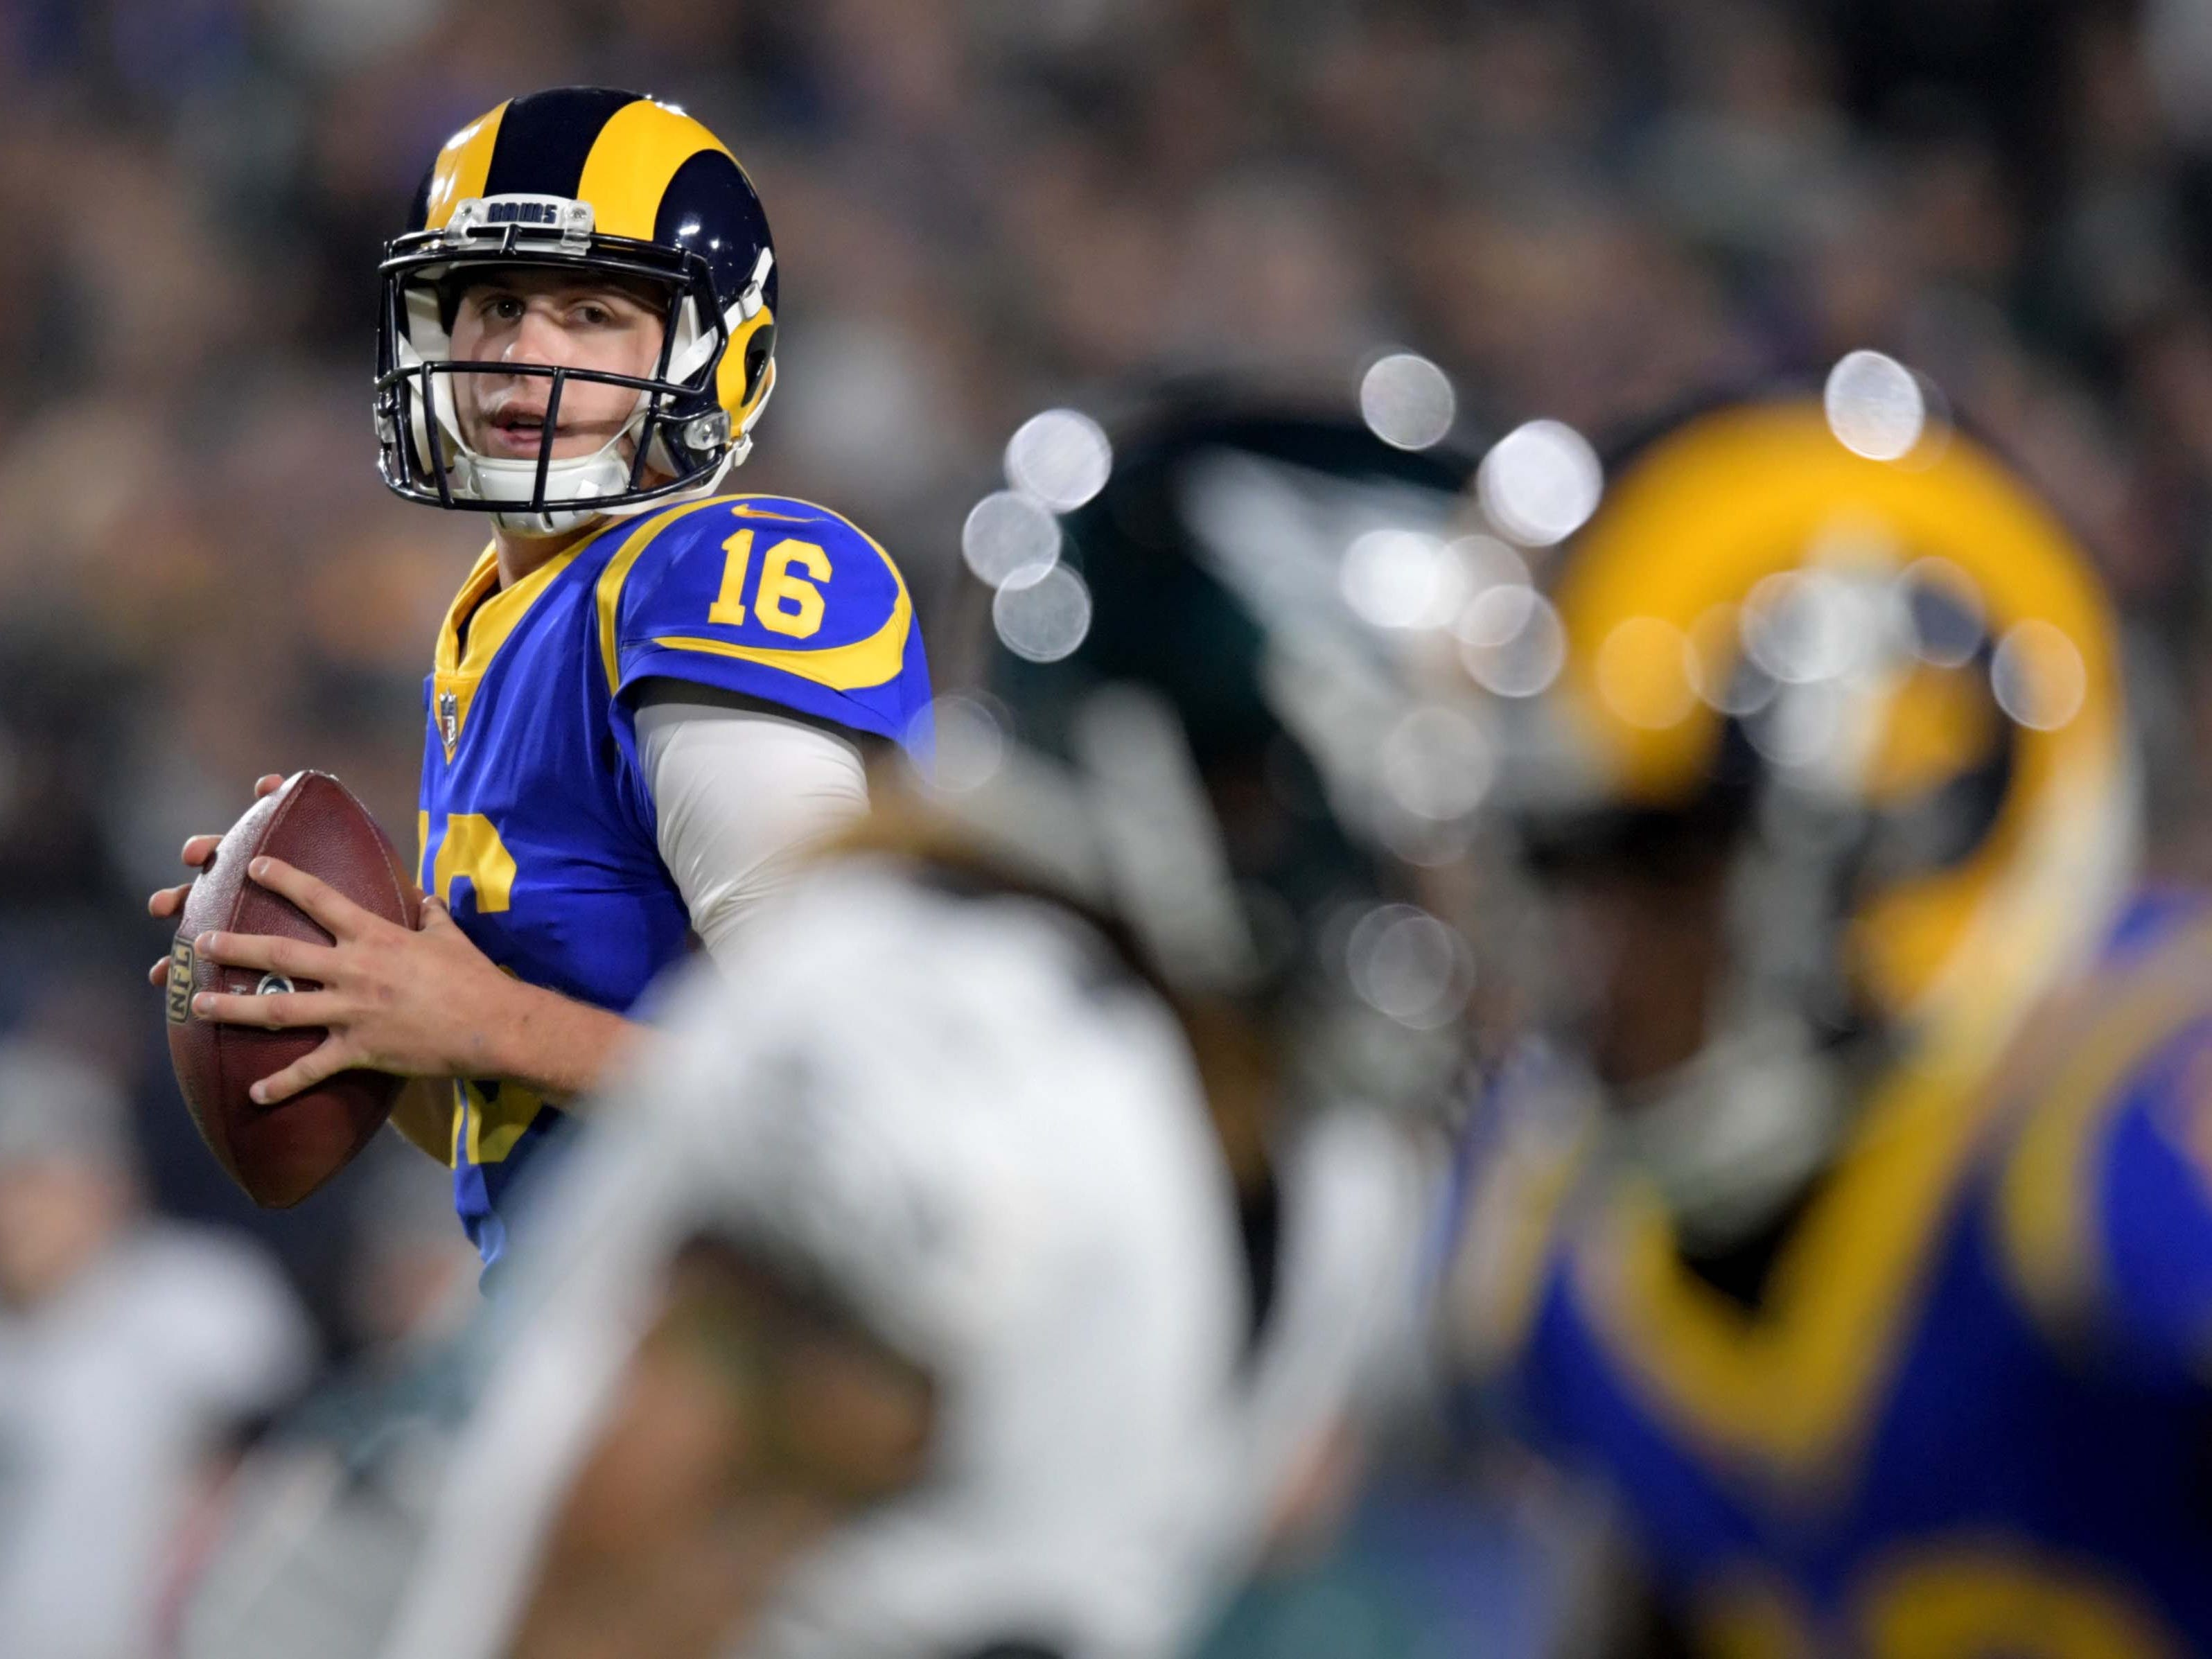 Los Angeles Rams quarterback Jared Goff throws a pass against the Philadelphia Eagles during the first half at Los Angeles Memorial Coliseum.